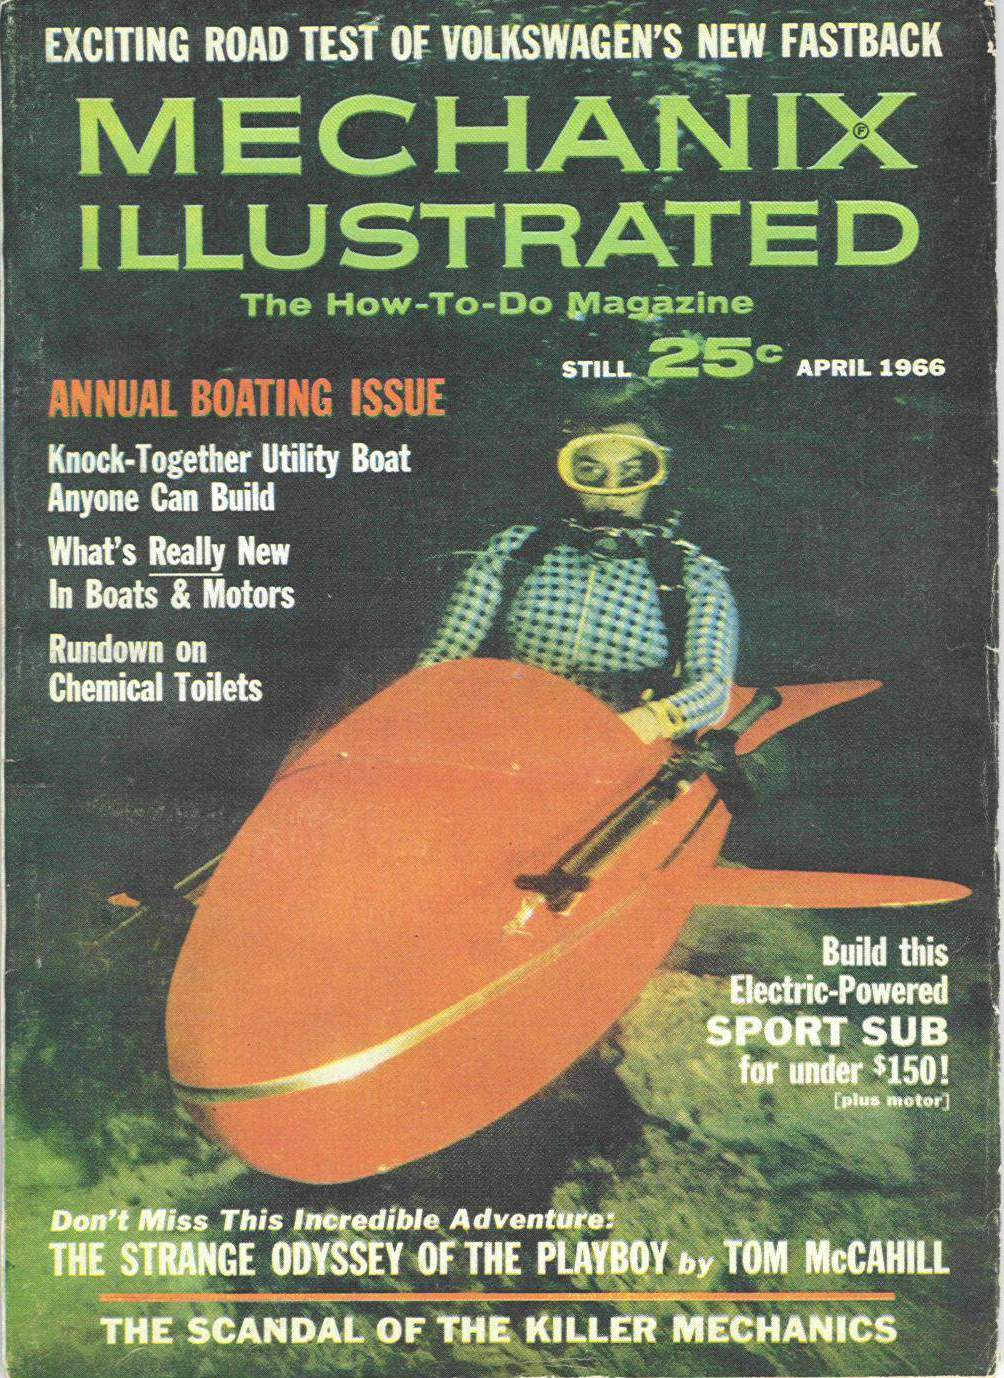 Mechanix Illustrated: Build Your Own Sport Submarine - April 1966